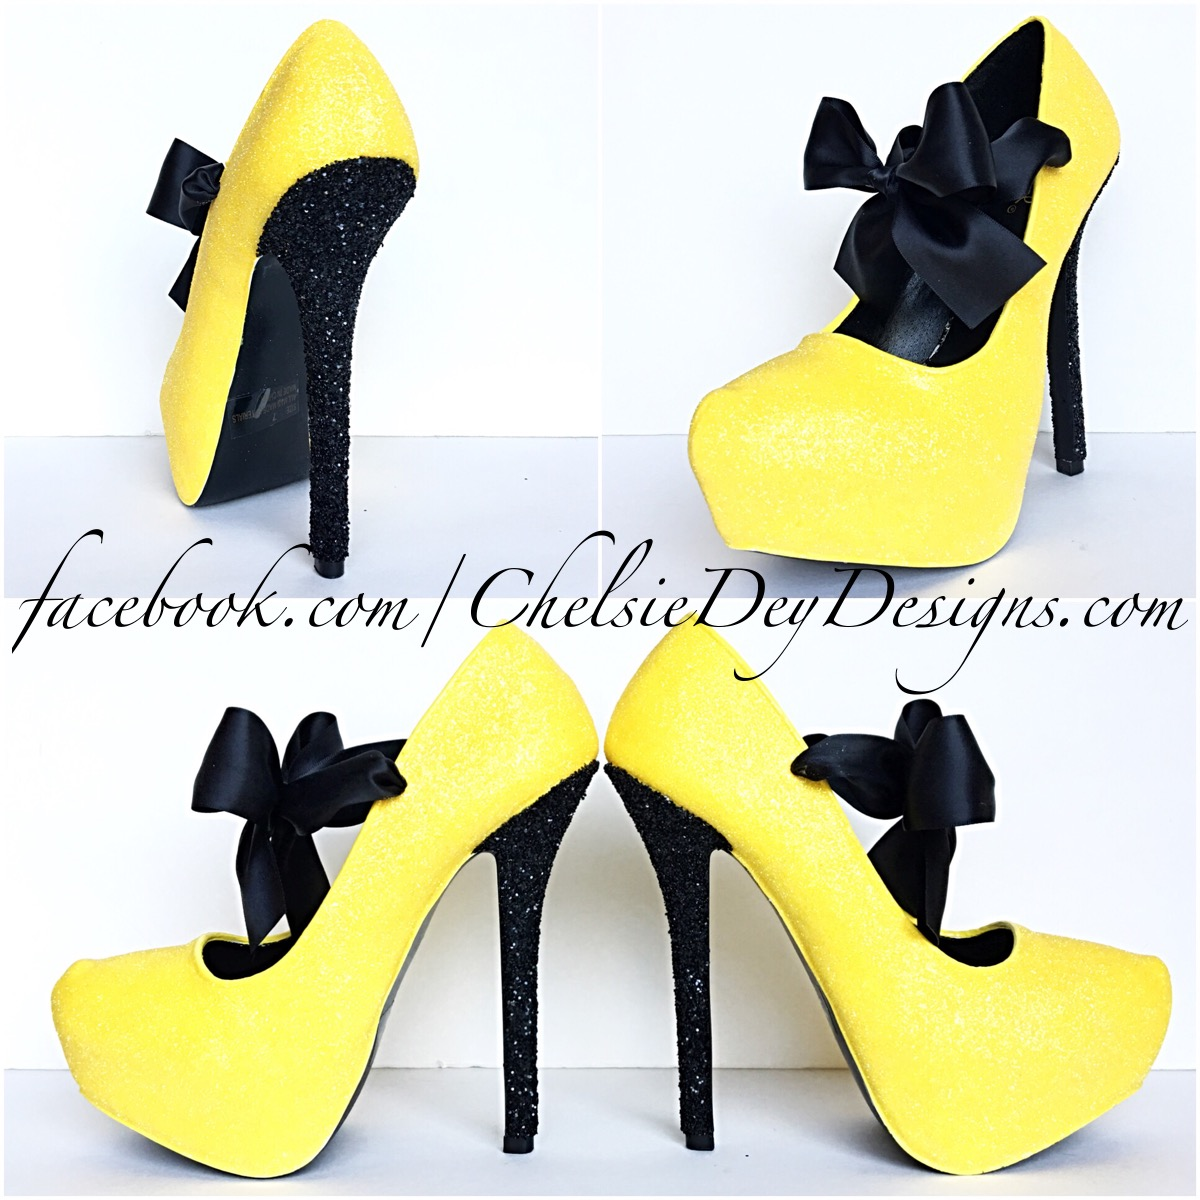 Pumps High Glitter Yellow HeelsBlack PumpsSparkly Platform Prom XZuOiPTk